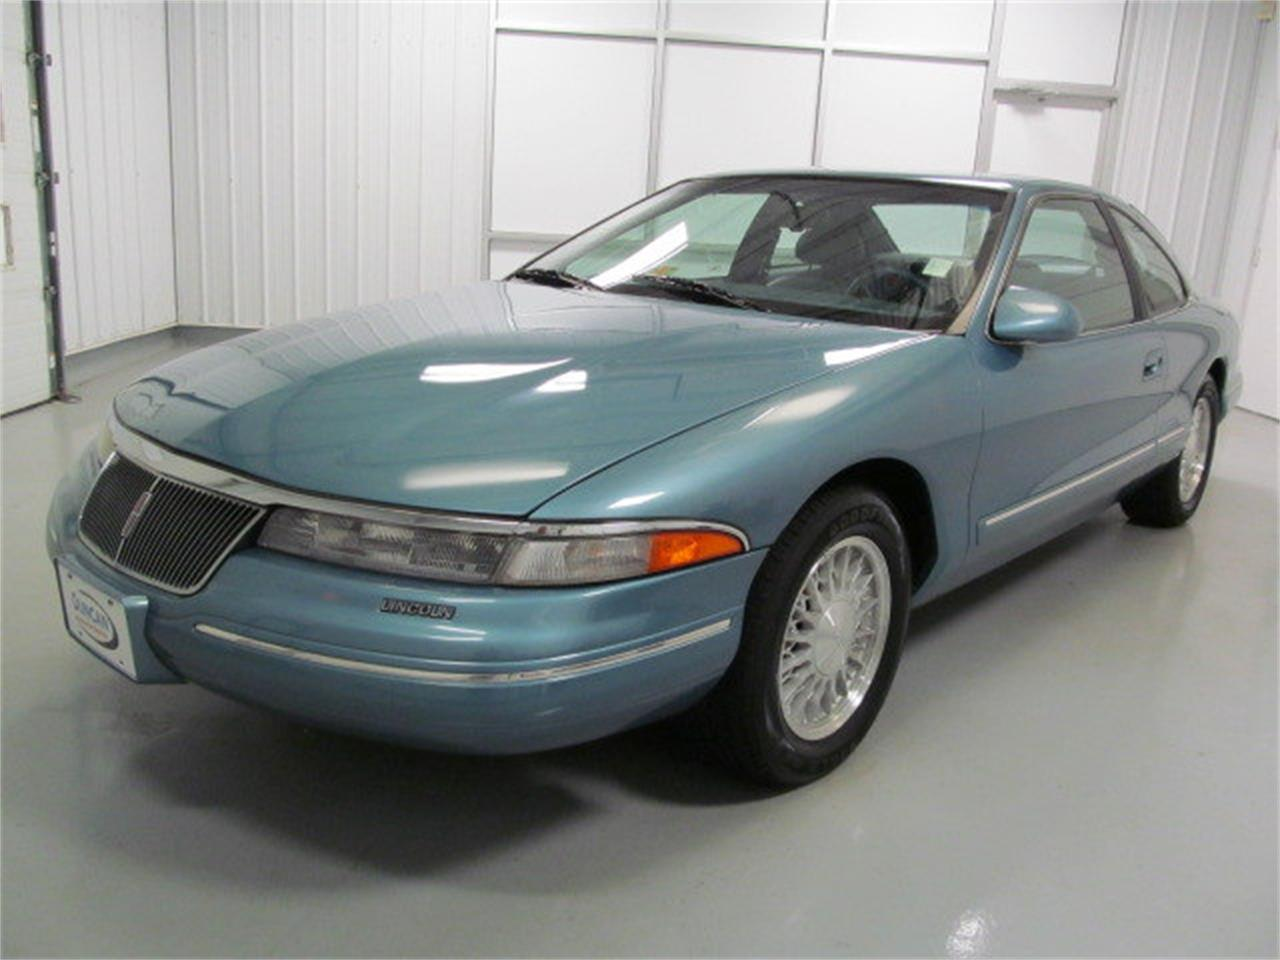 Large Picture of '93 Lincoln Mark VIII - $9,900.00 Offered by Duncan Imports & Classic Cars - JL9Z